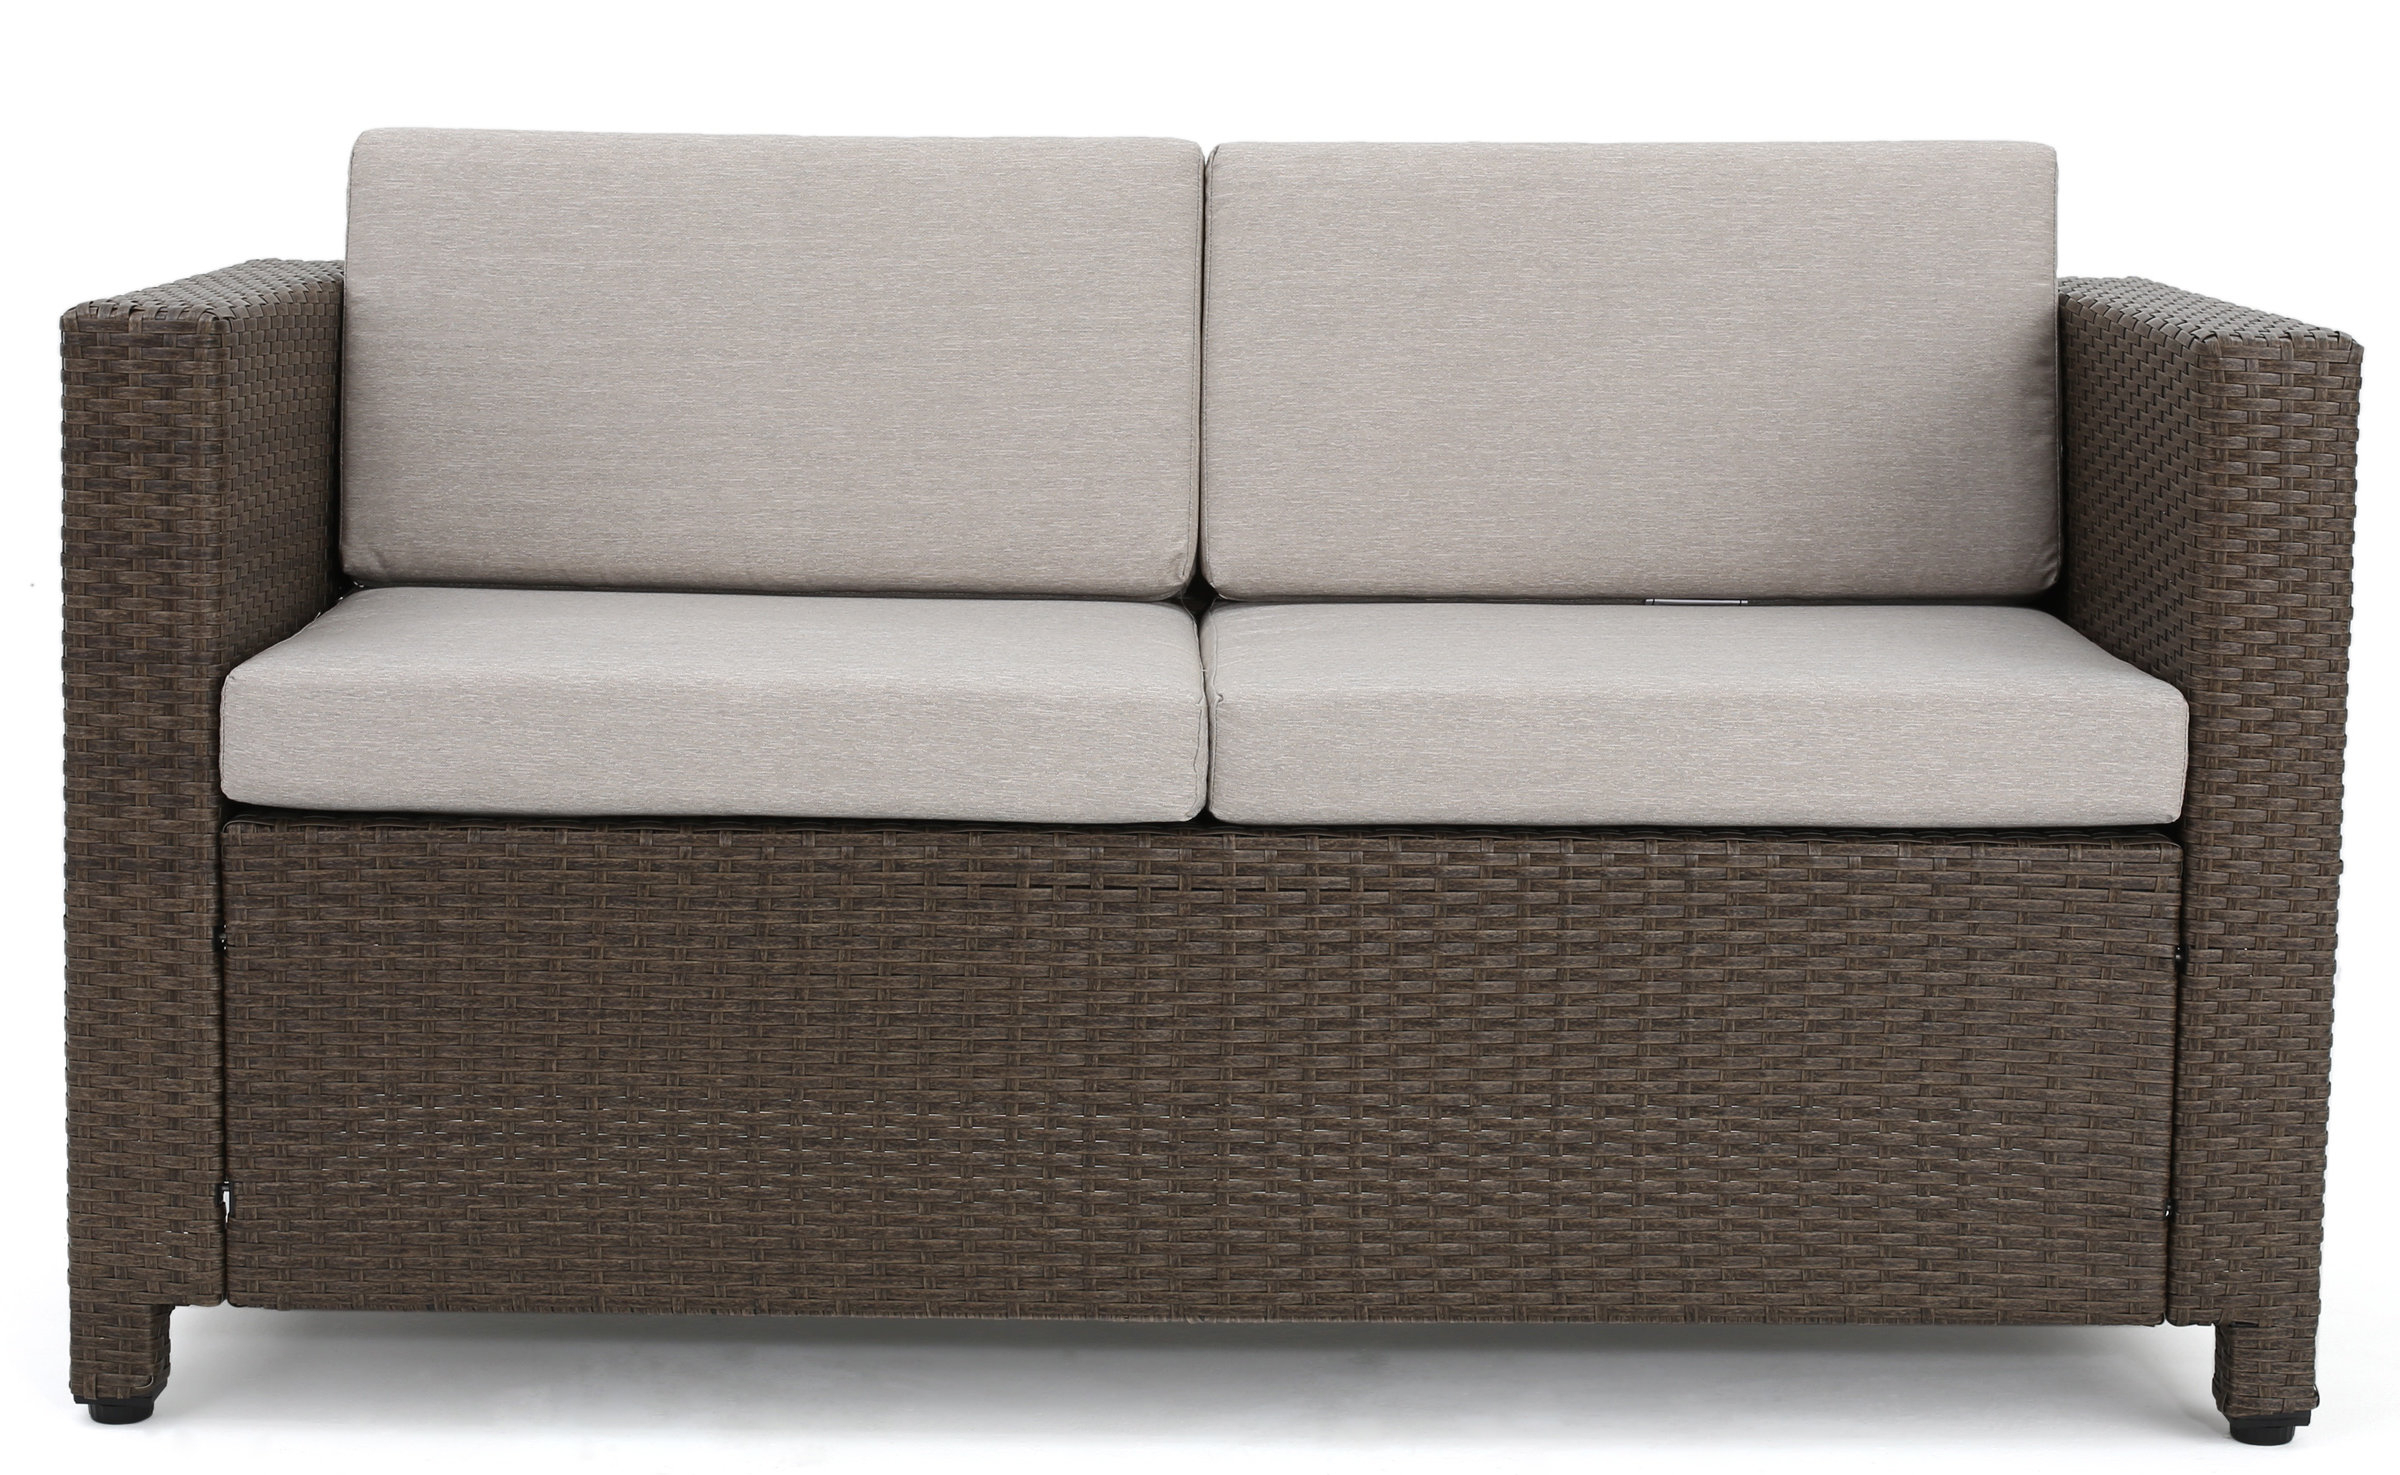 Furst Outdoor Loveseat With Cushions Throughout Popular Yoselin Patio Sofas With Cushions (View 7 of 20)